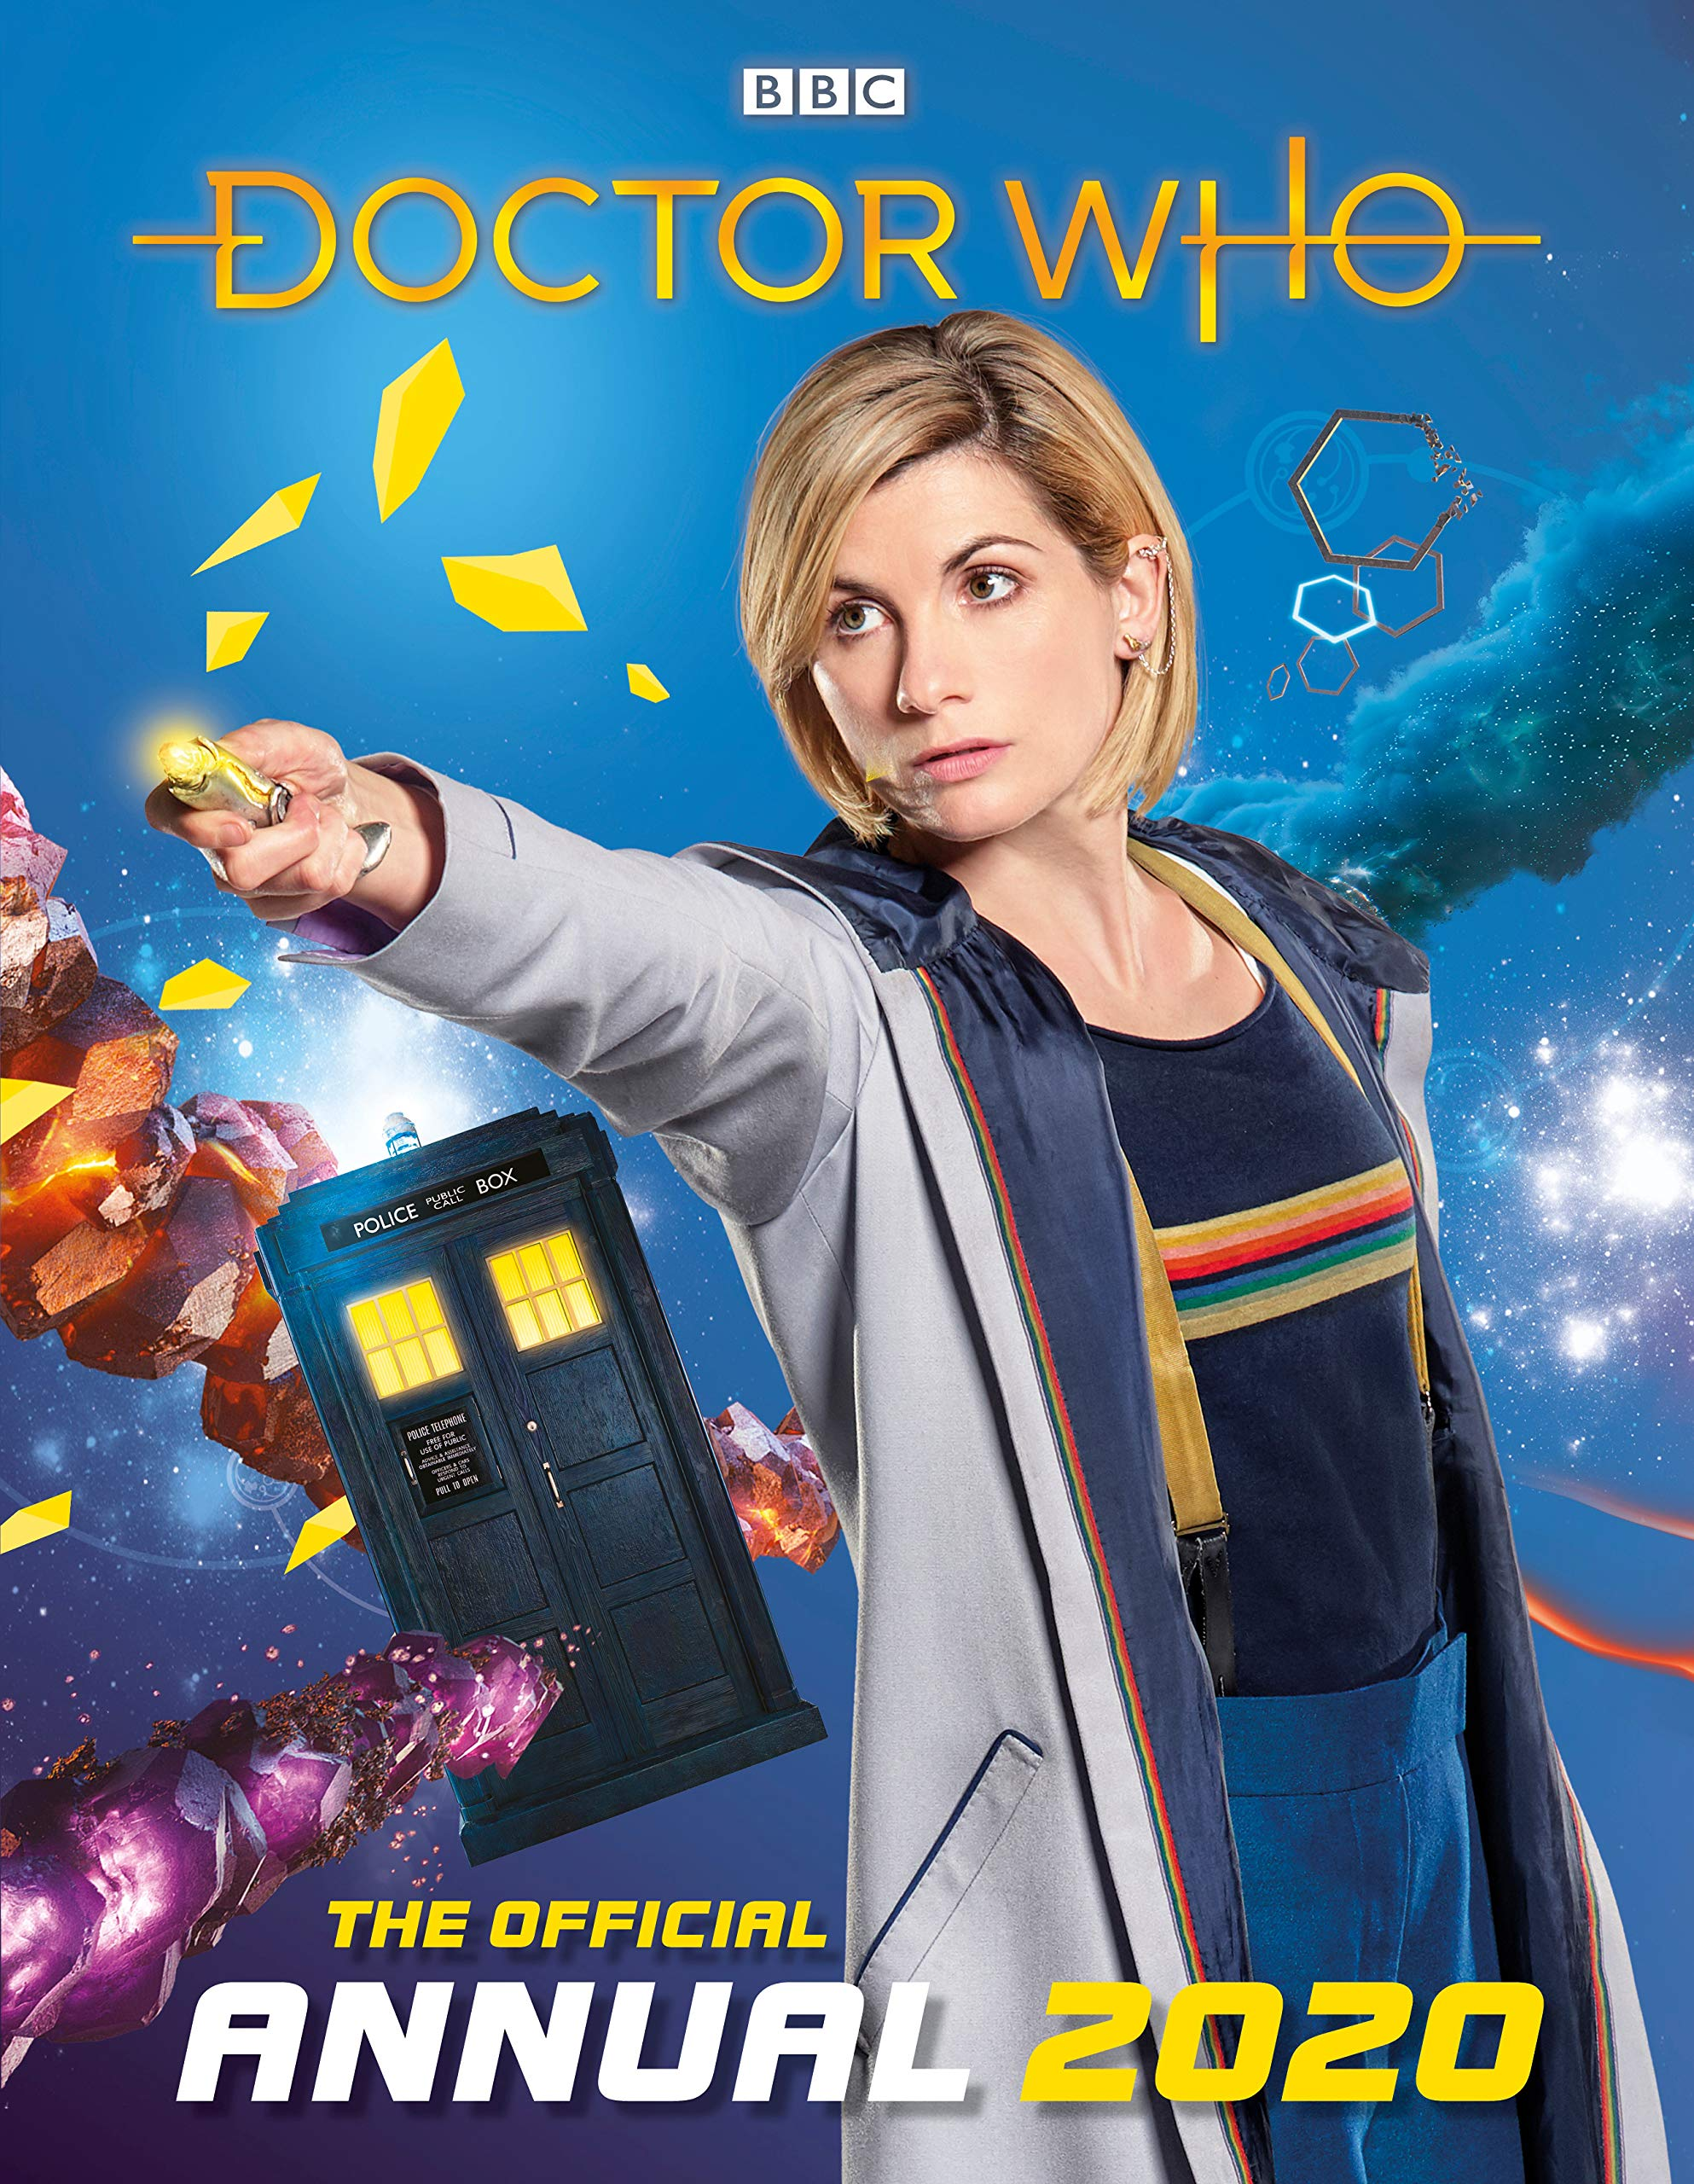 The Official Doctor Who Annual 2020